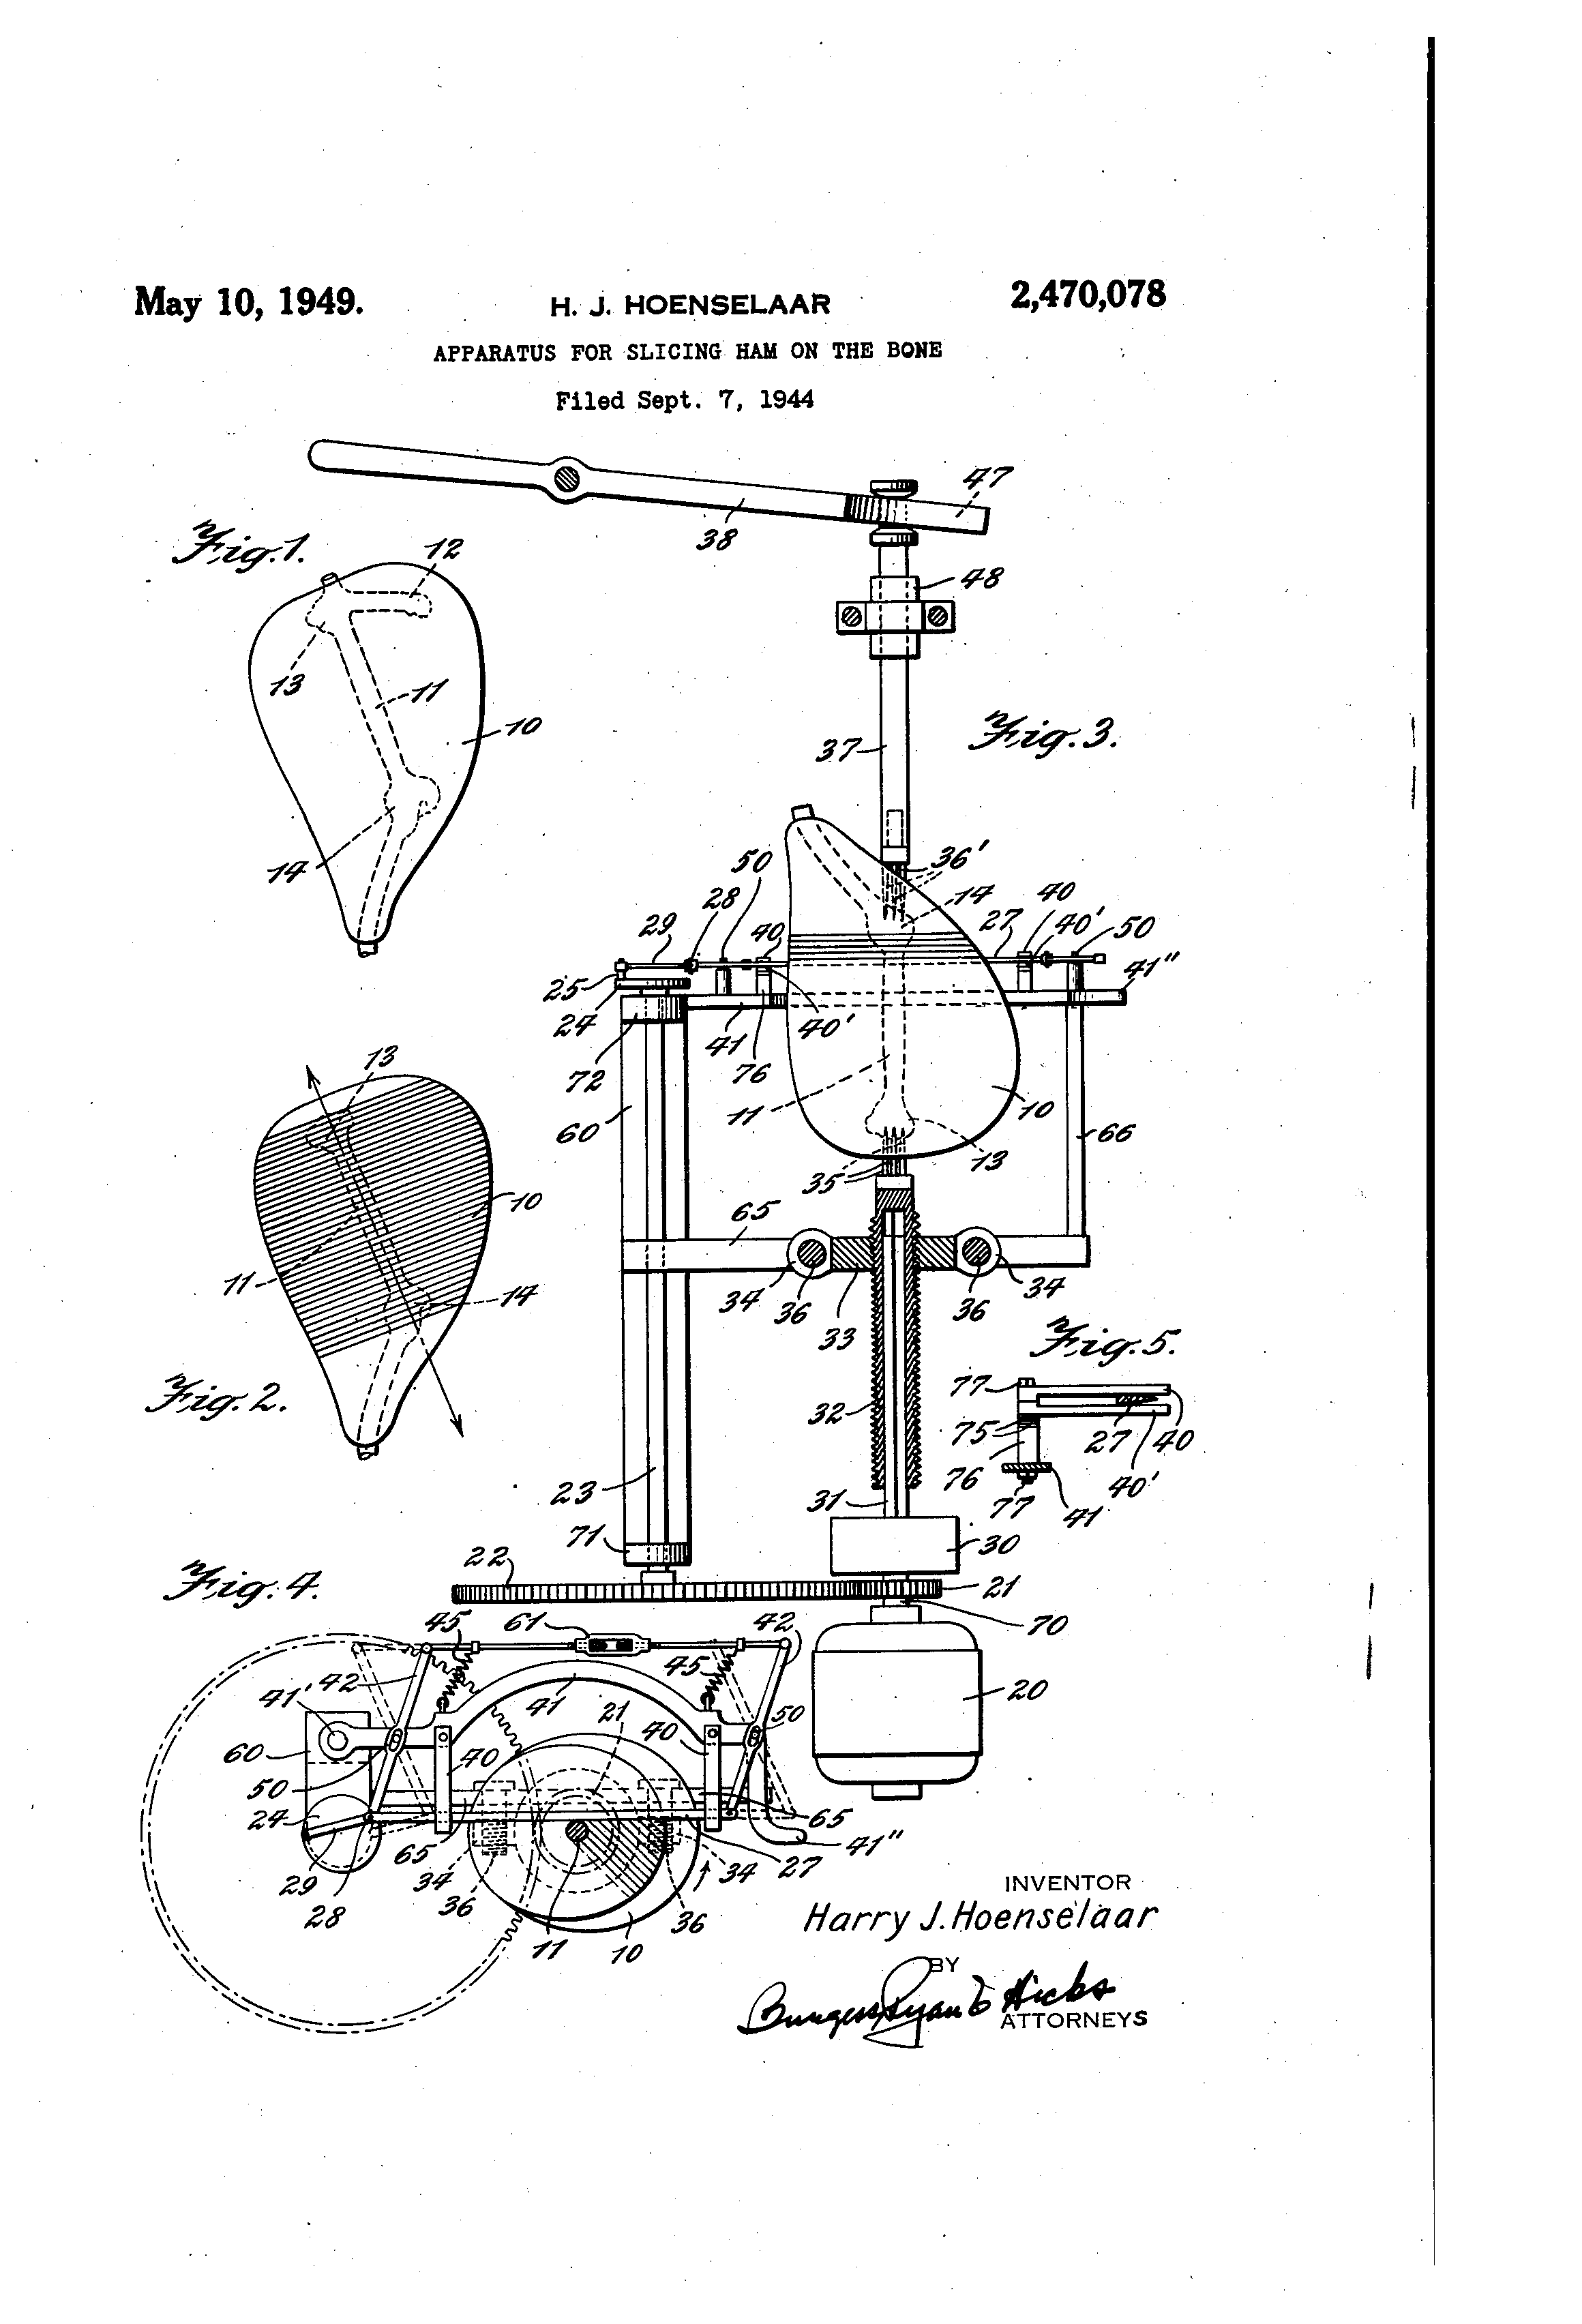 """Patent drawing for """"a device to slice ham on the bone"""" by Harry Hoenselaar."""